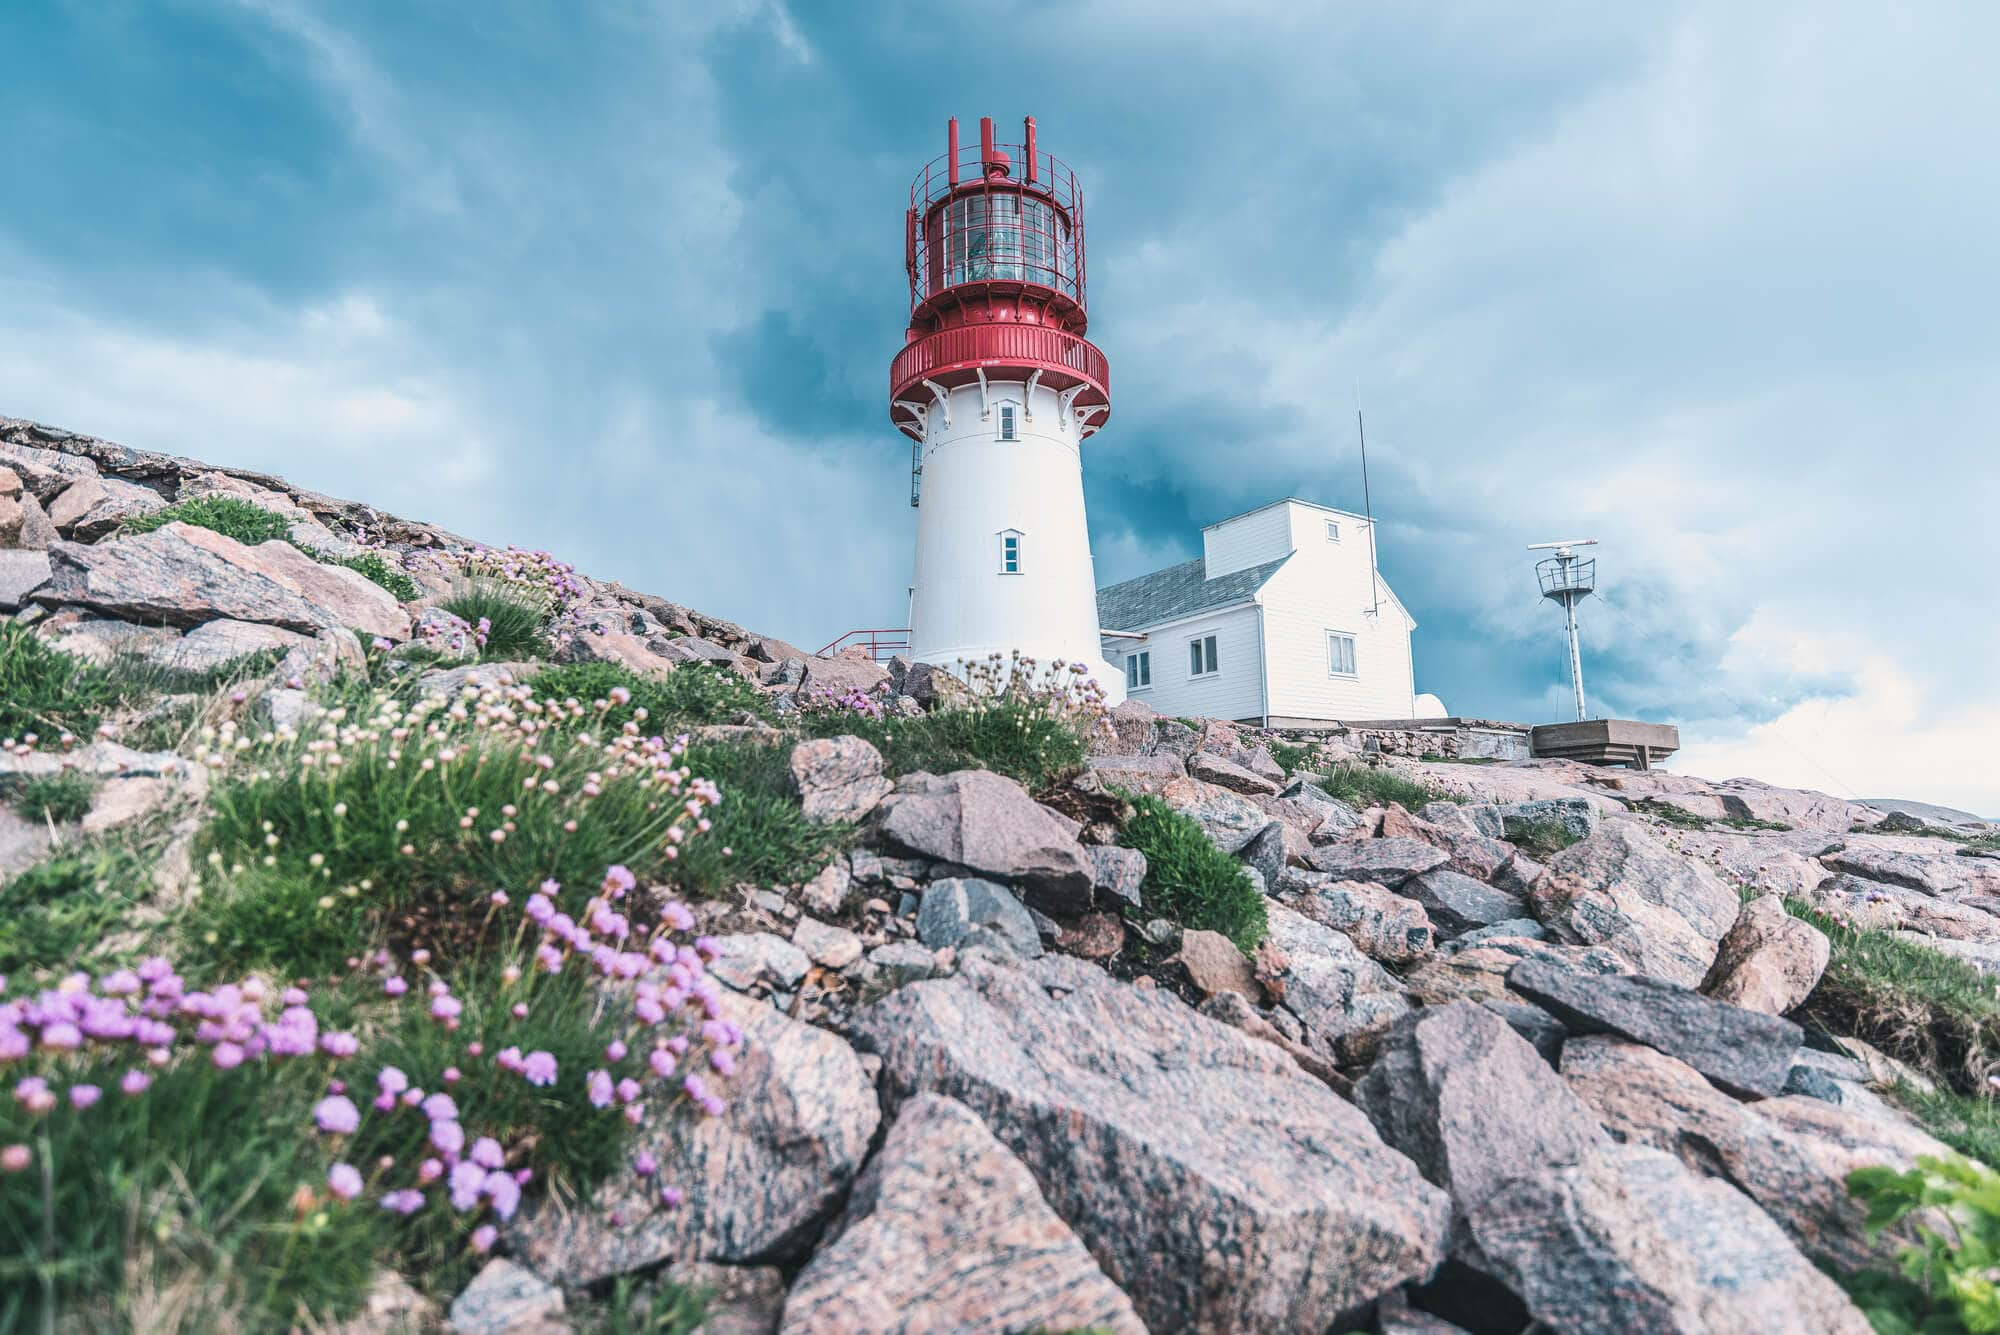 Top things to do in Norway - The picturesque Lindesnes Fyr #bucketlist #travelinspo #lindesnes #norway #Agder